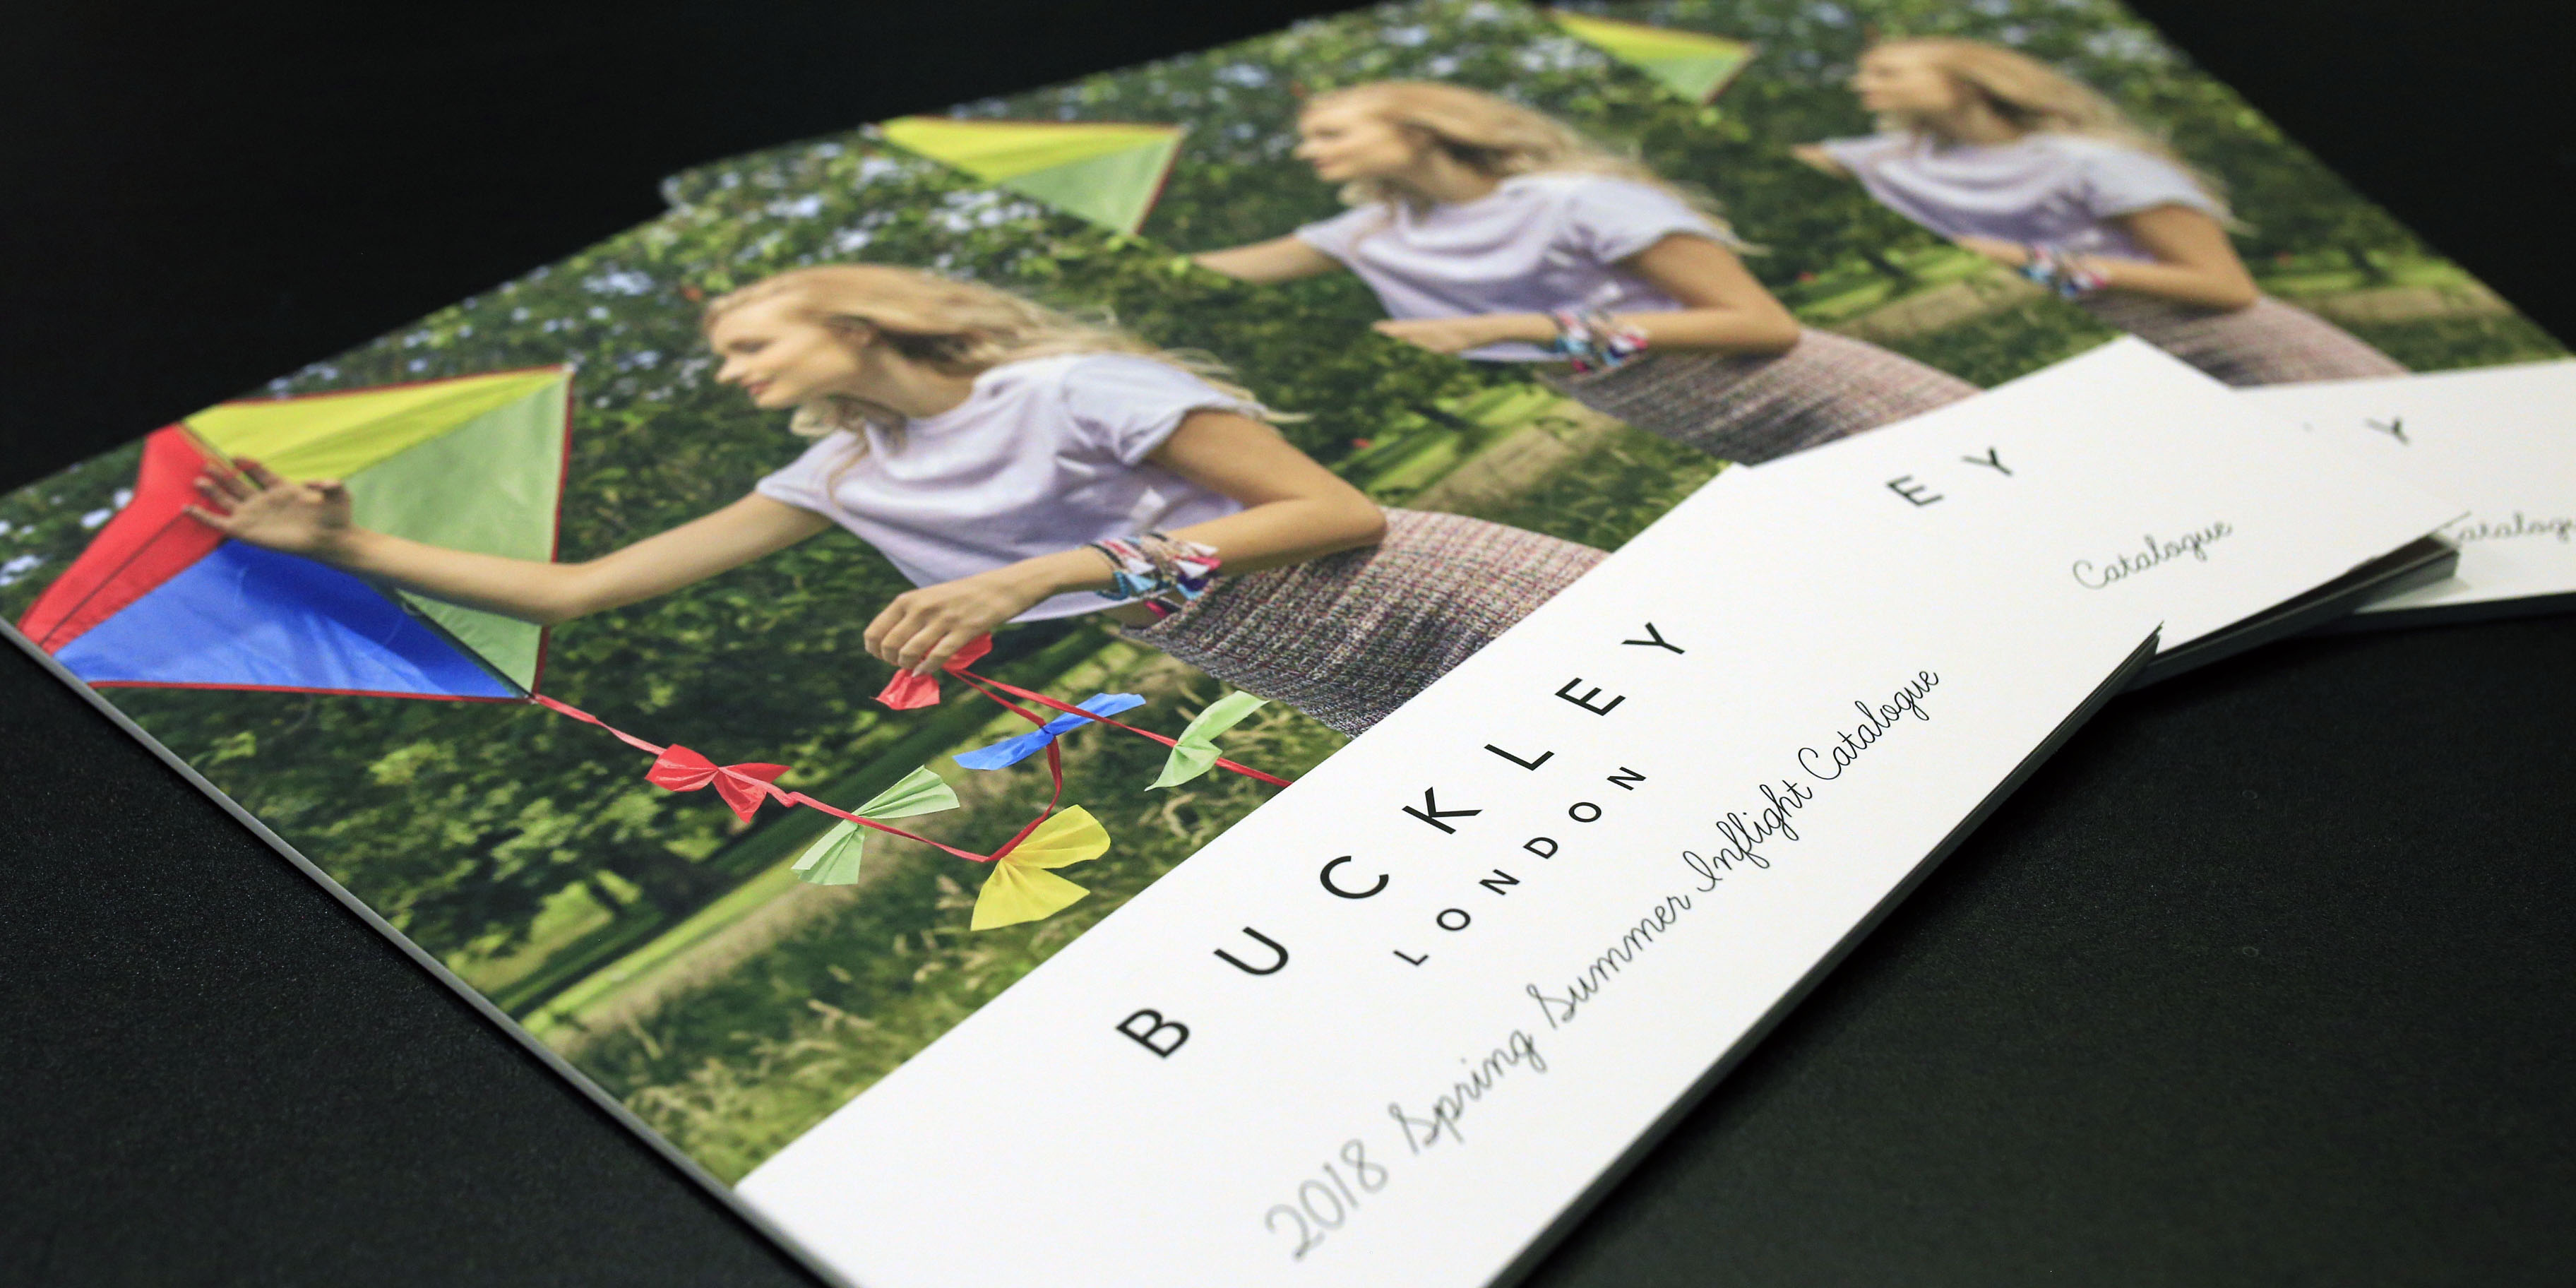 Buckley London brochures on table